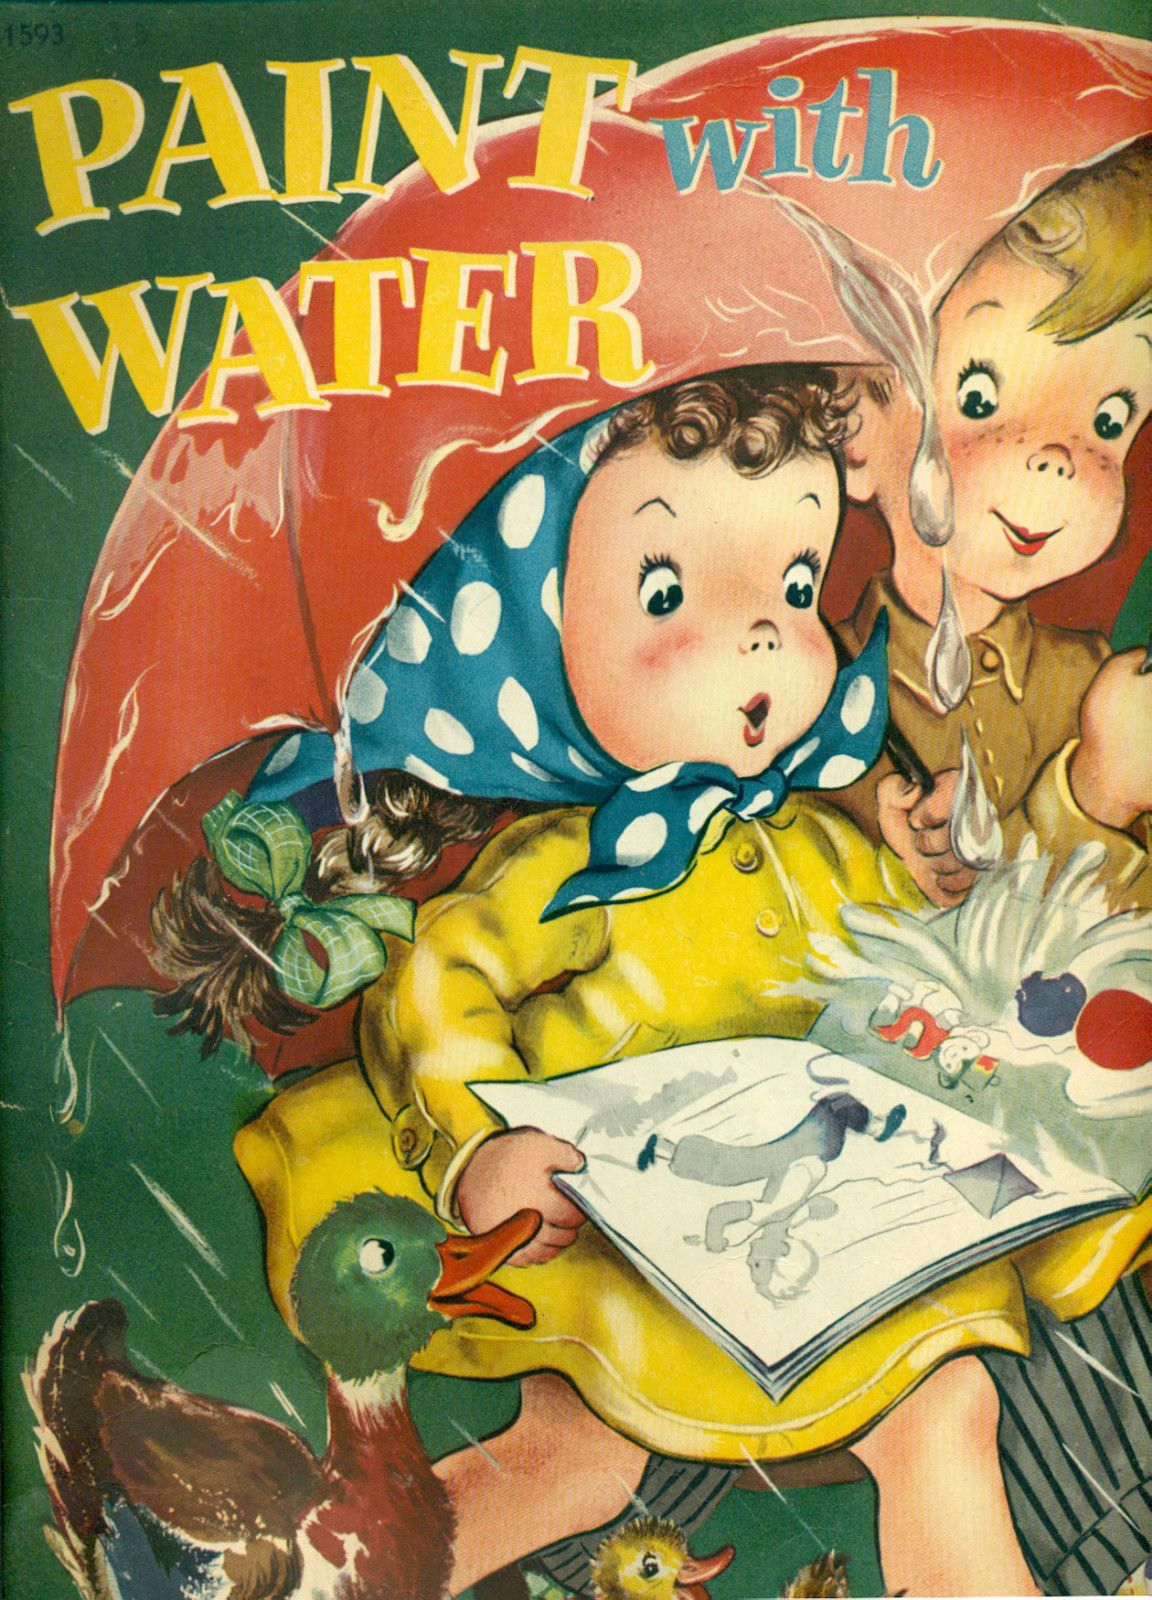 Paint With Water Coloring Book 1949 Merrill Ebay Vintage Coloring Books Childrens Books Illustrations Coloring Books